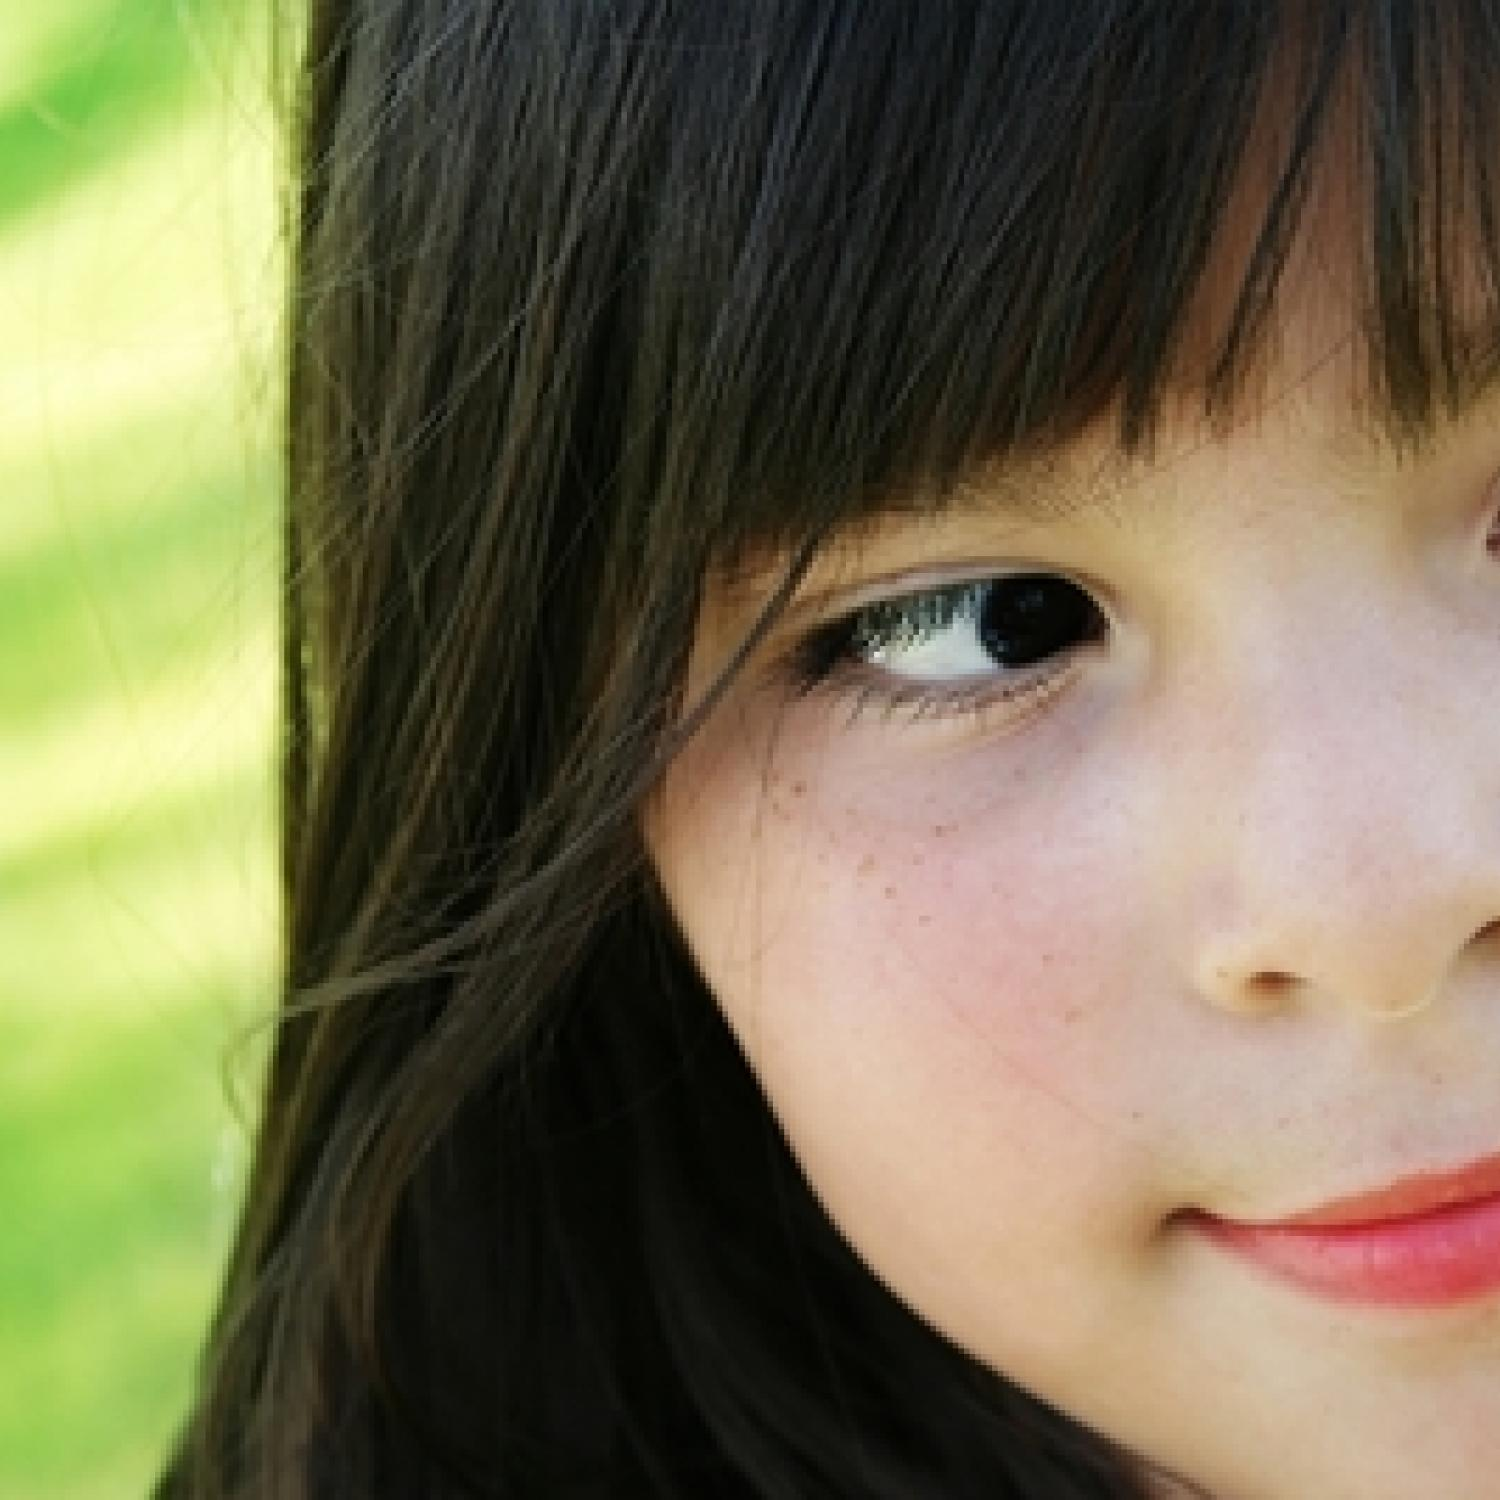 Precocious Puberty Might be the New Normal   Parenting